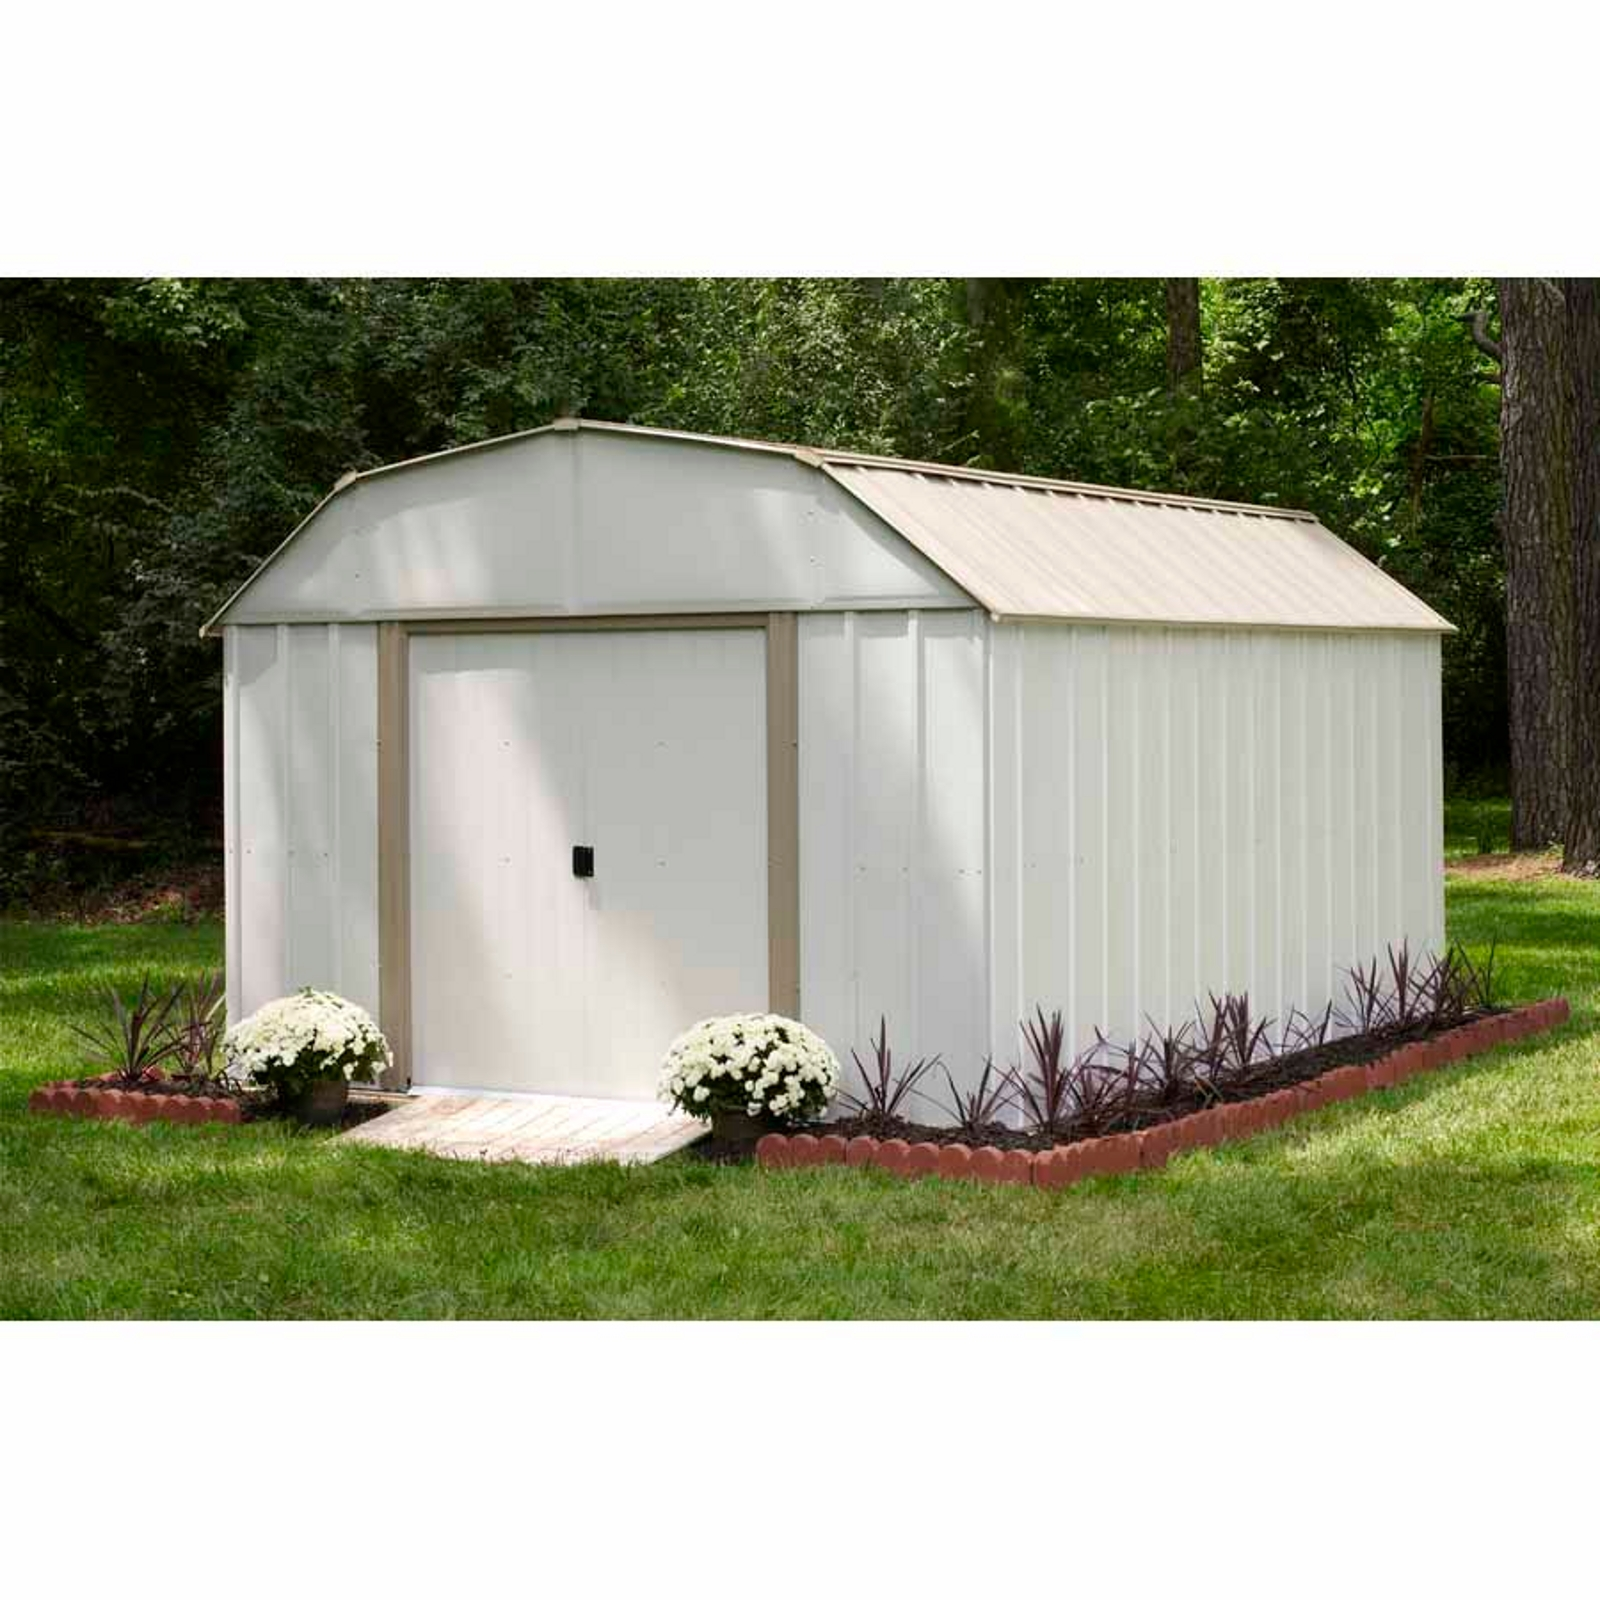 Garden Sheds Menards sheds: brilliant rubbermaid storage sheds for best shed